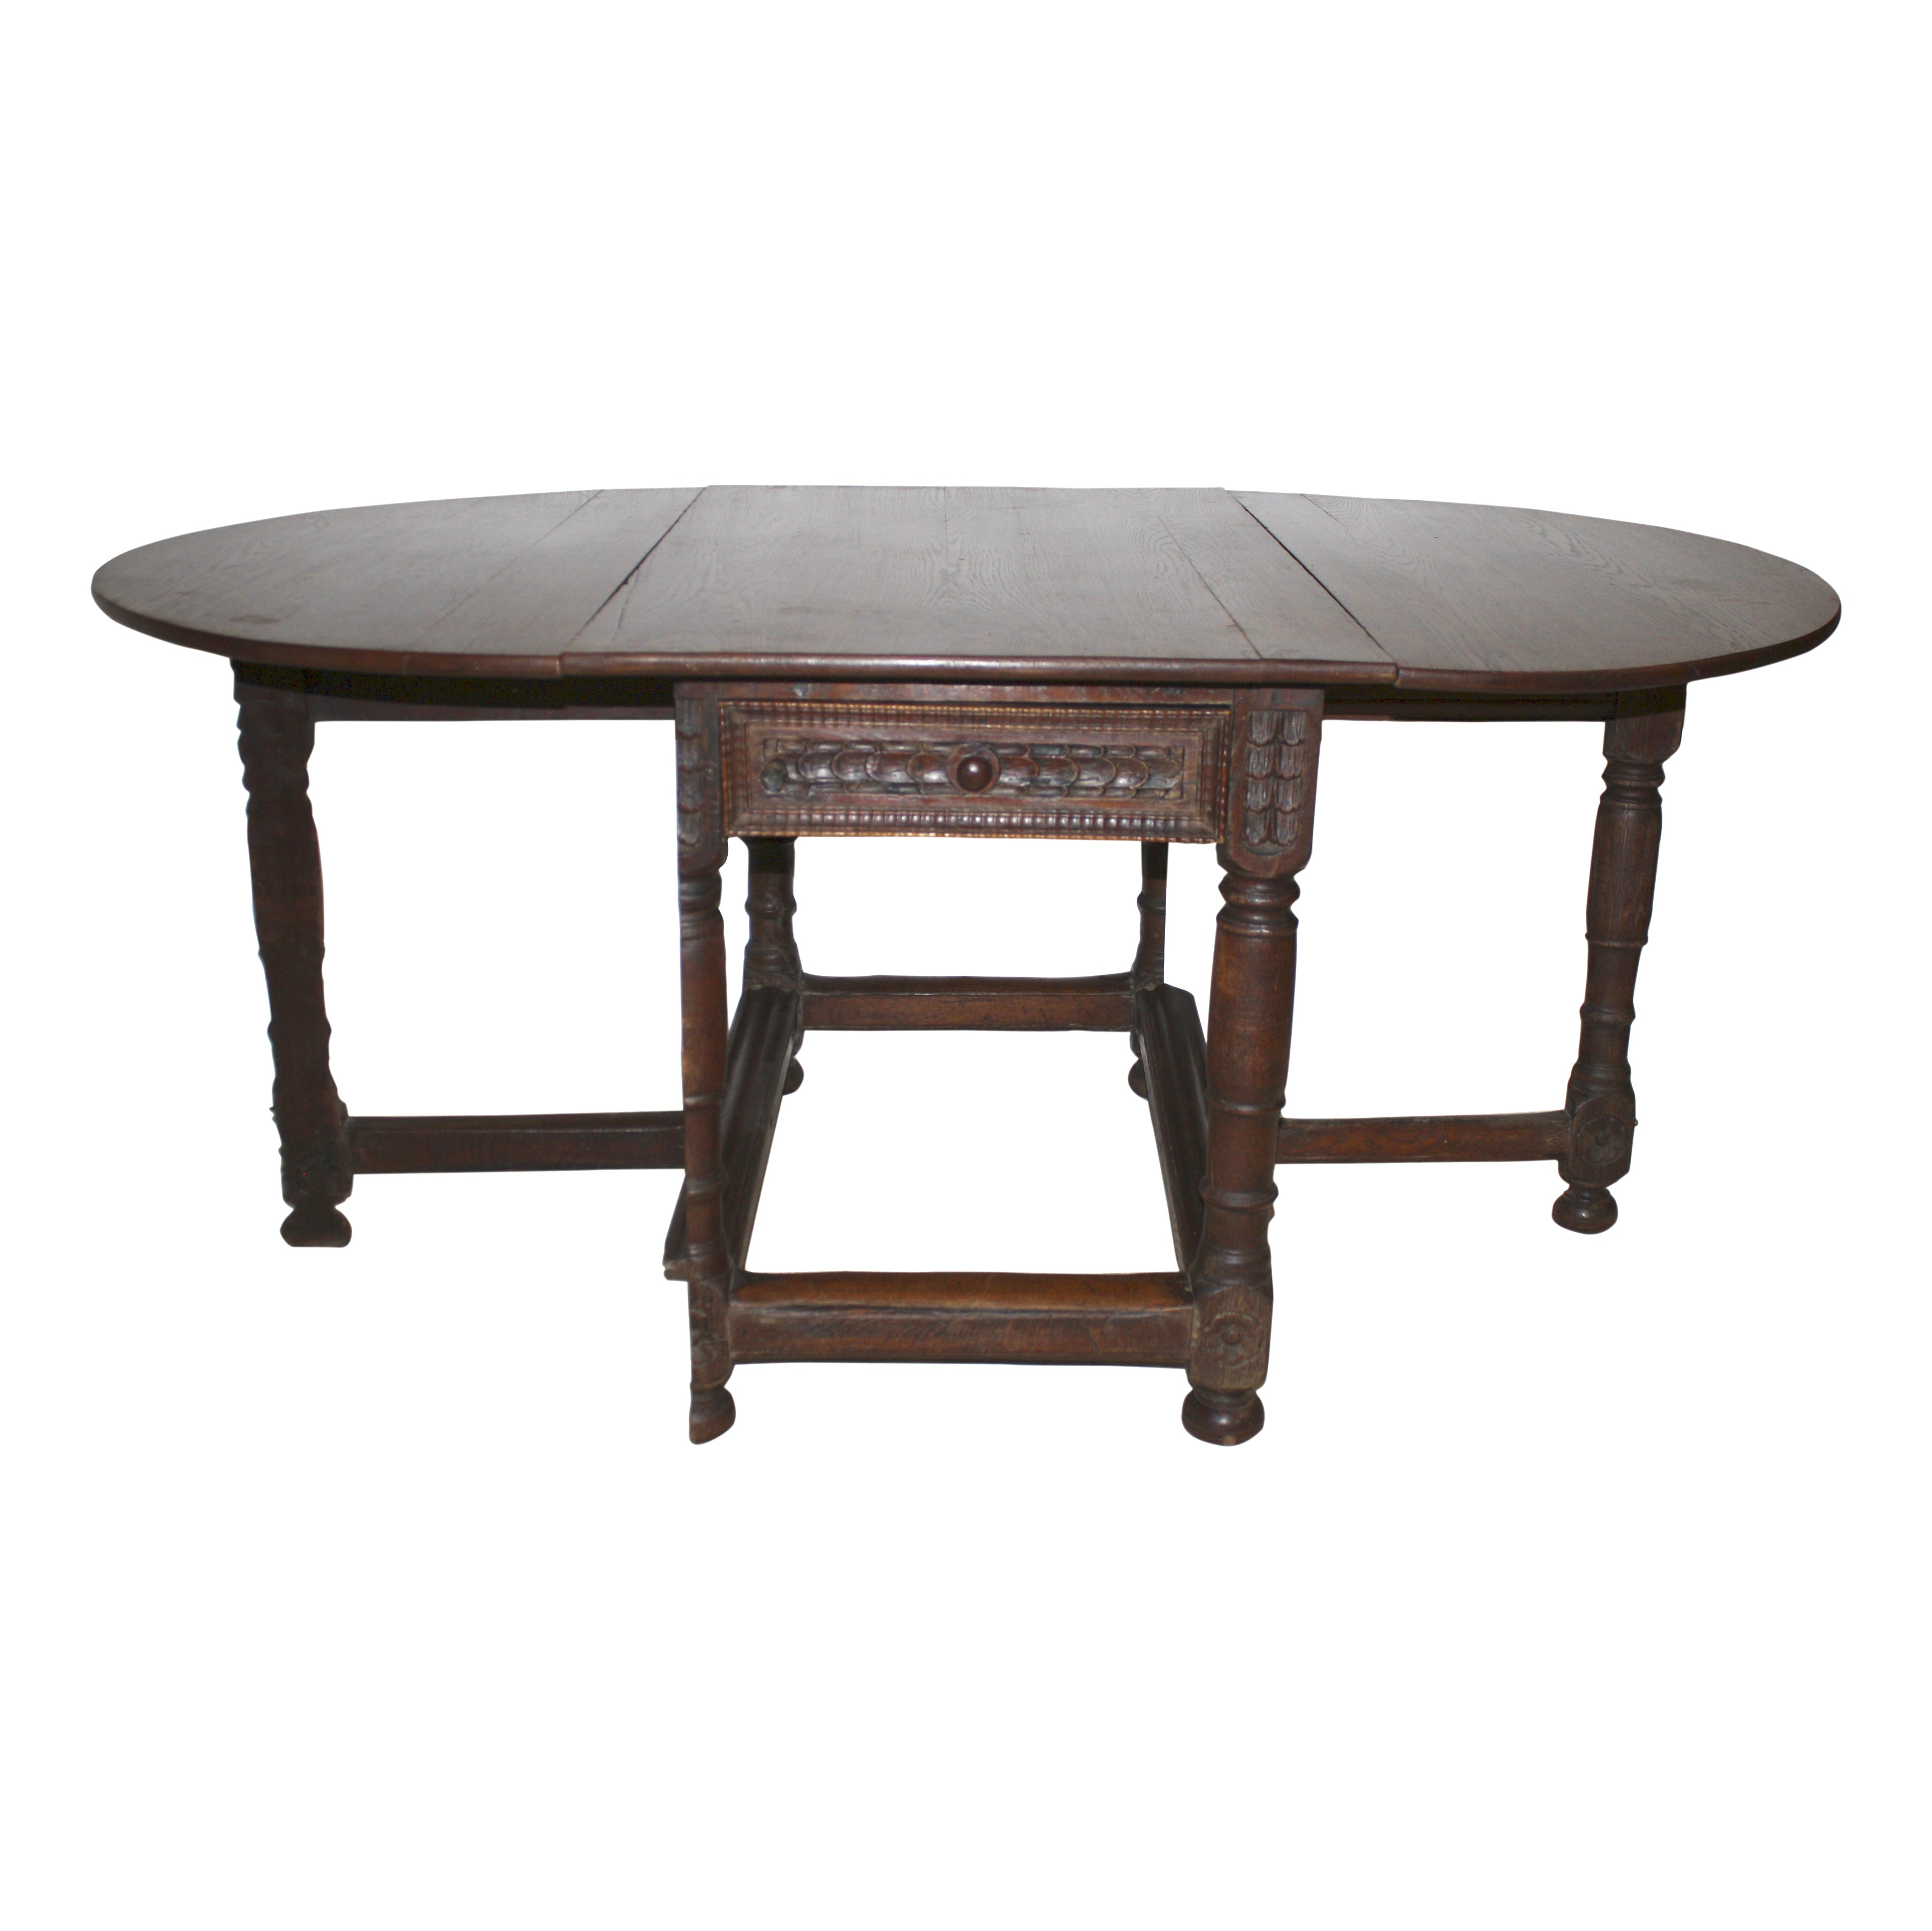 Oak Oval Drop Leaf Table with Drawer